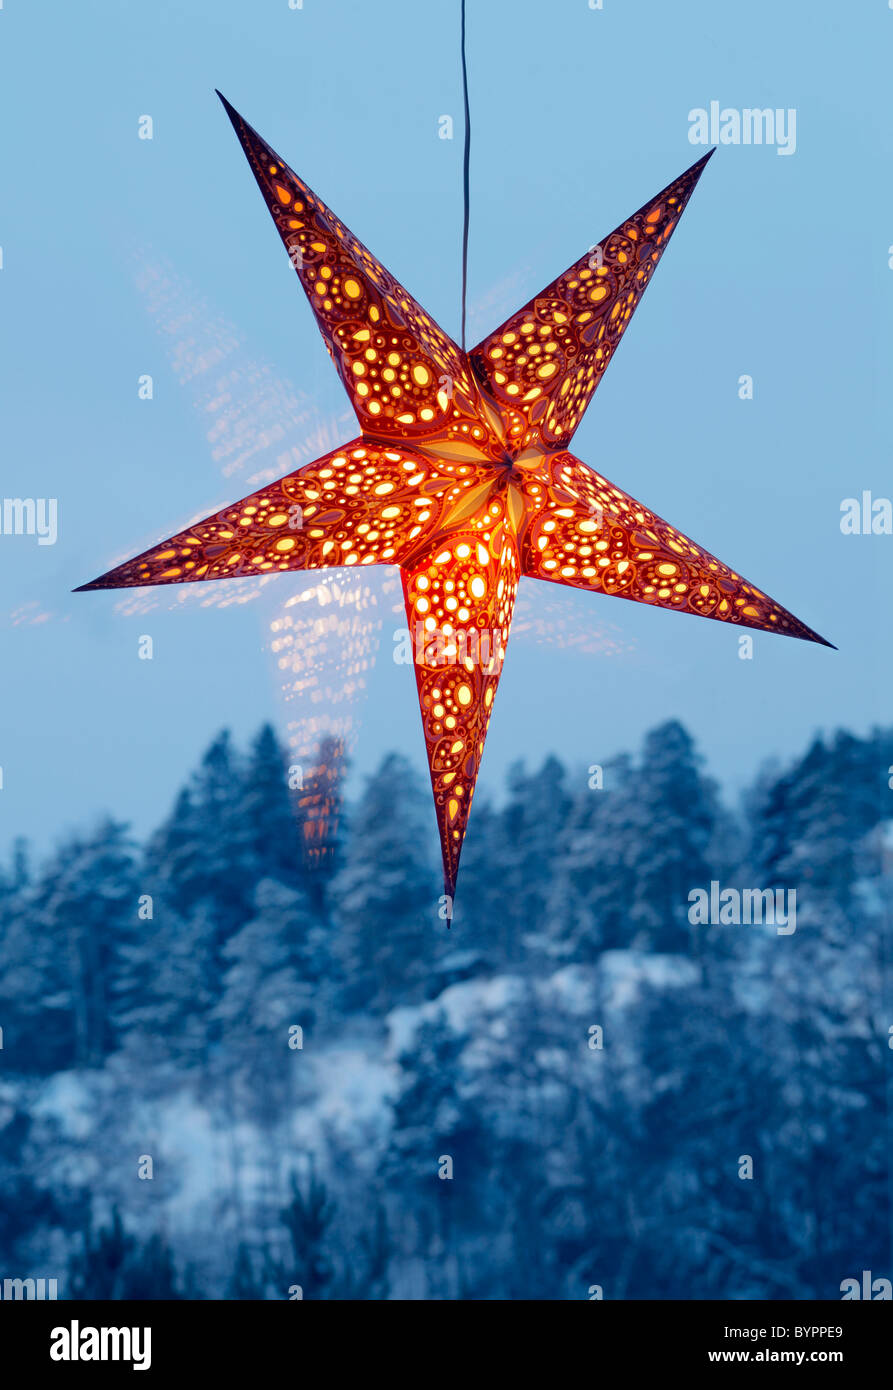 Illuminated night star in a large window - Stock Image